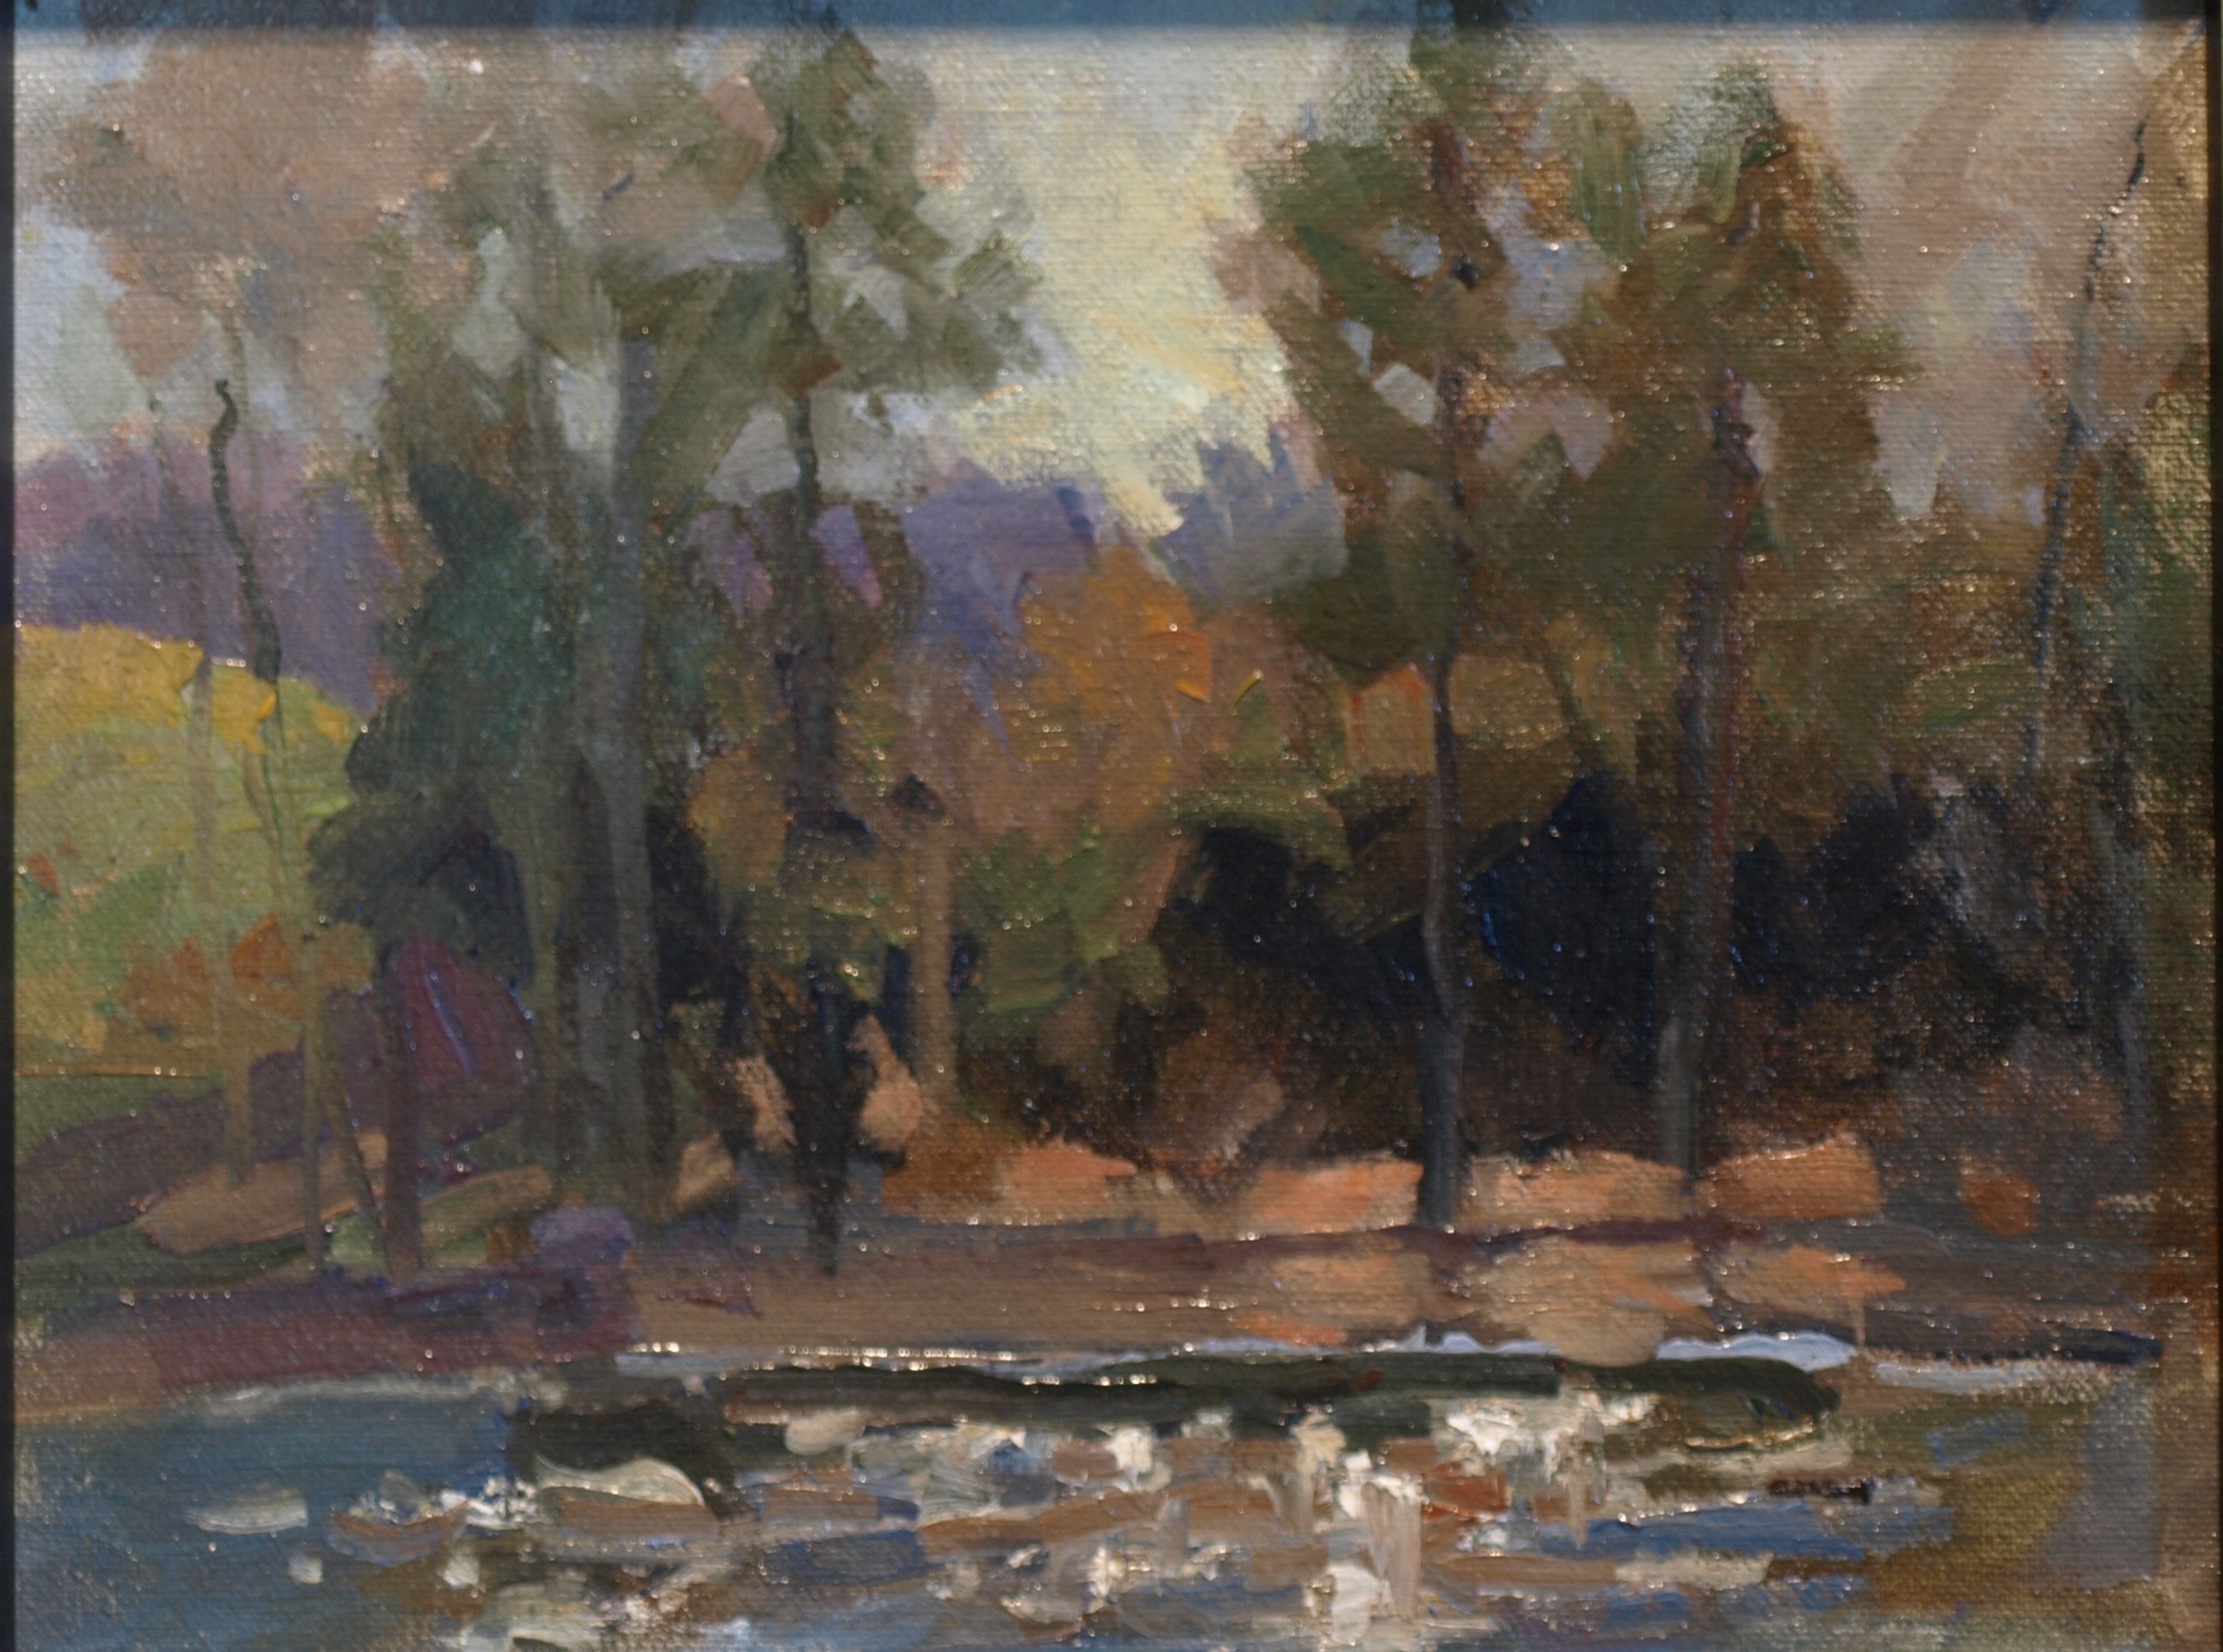 Sparkling River Oil on Canvas on Panel, 8 x 10 Inches, by Susan Grisell, $175